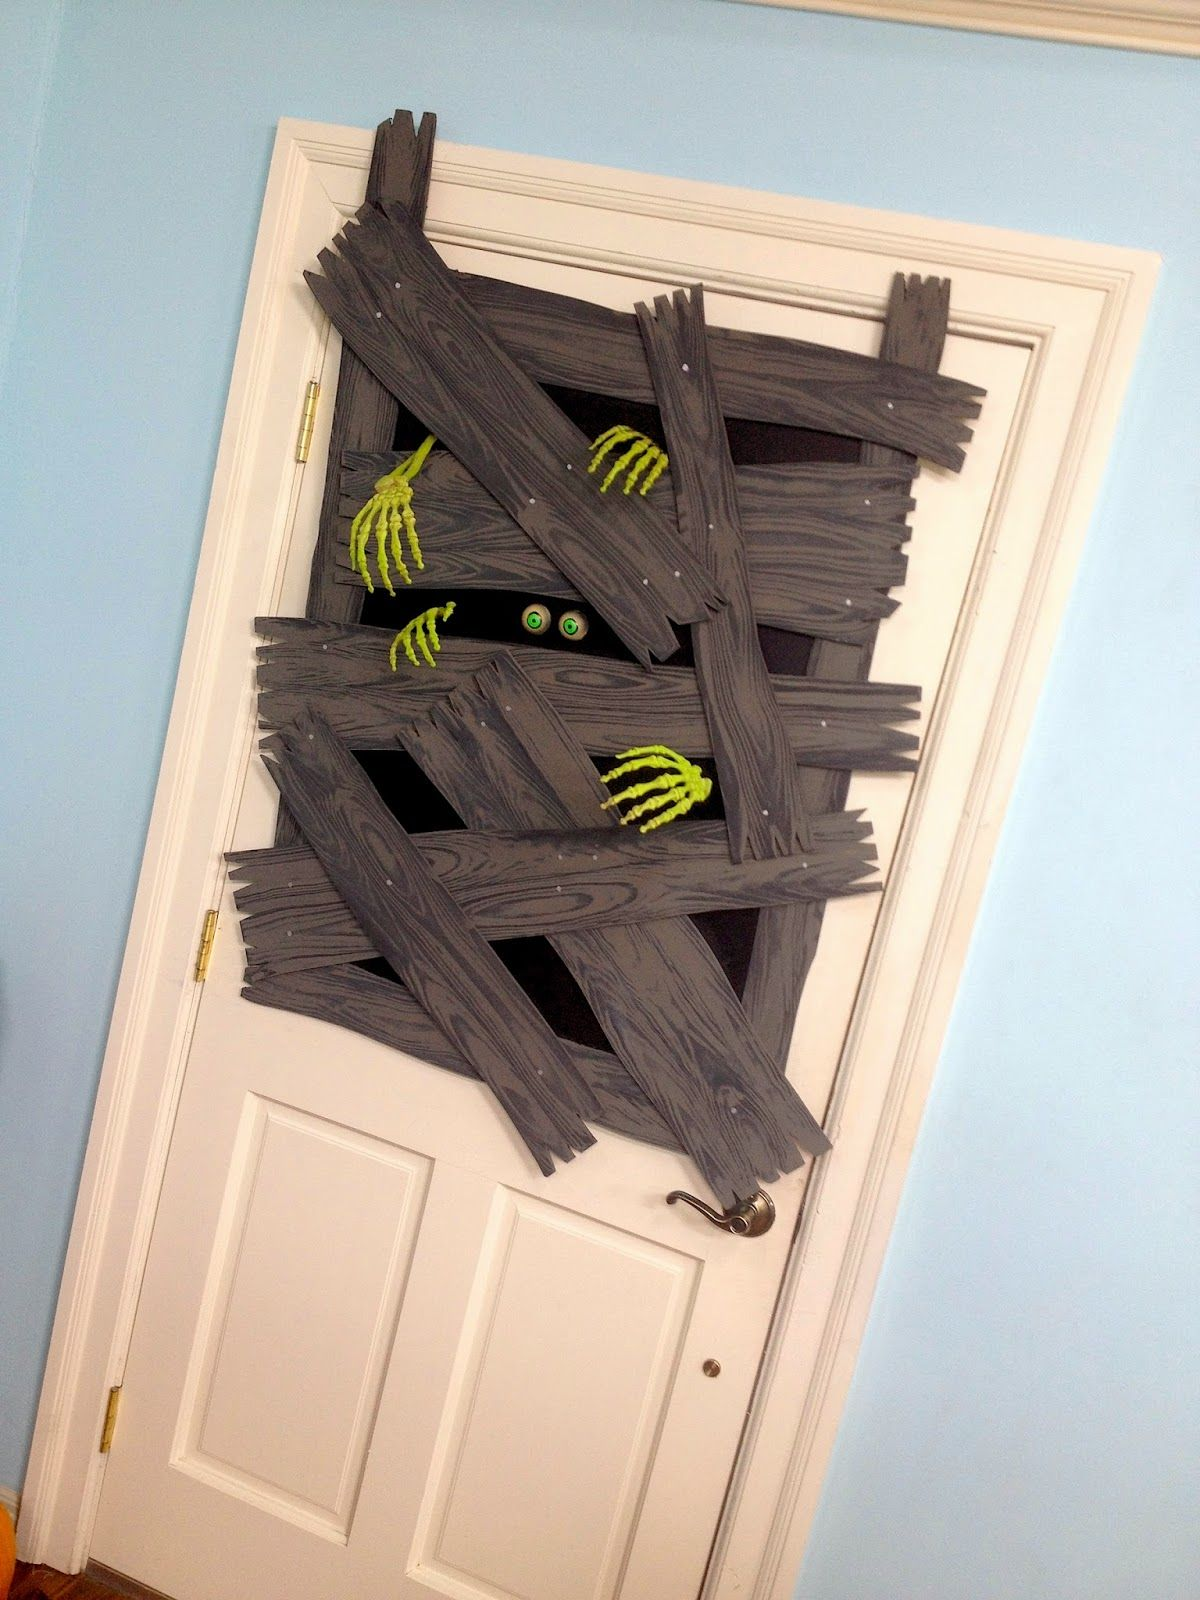 8 Fun Halloween Door Ideas Doors, Halloween ideas and Decoration - Front Door Halloween Decorations